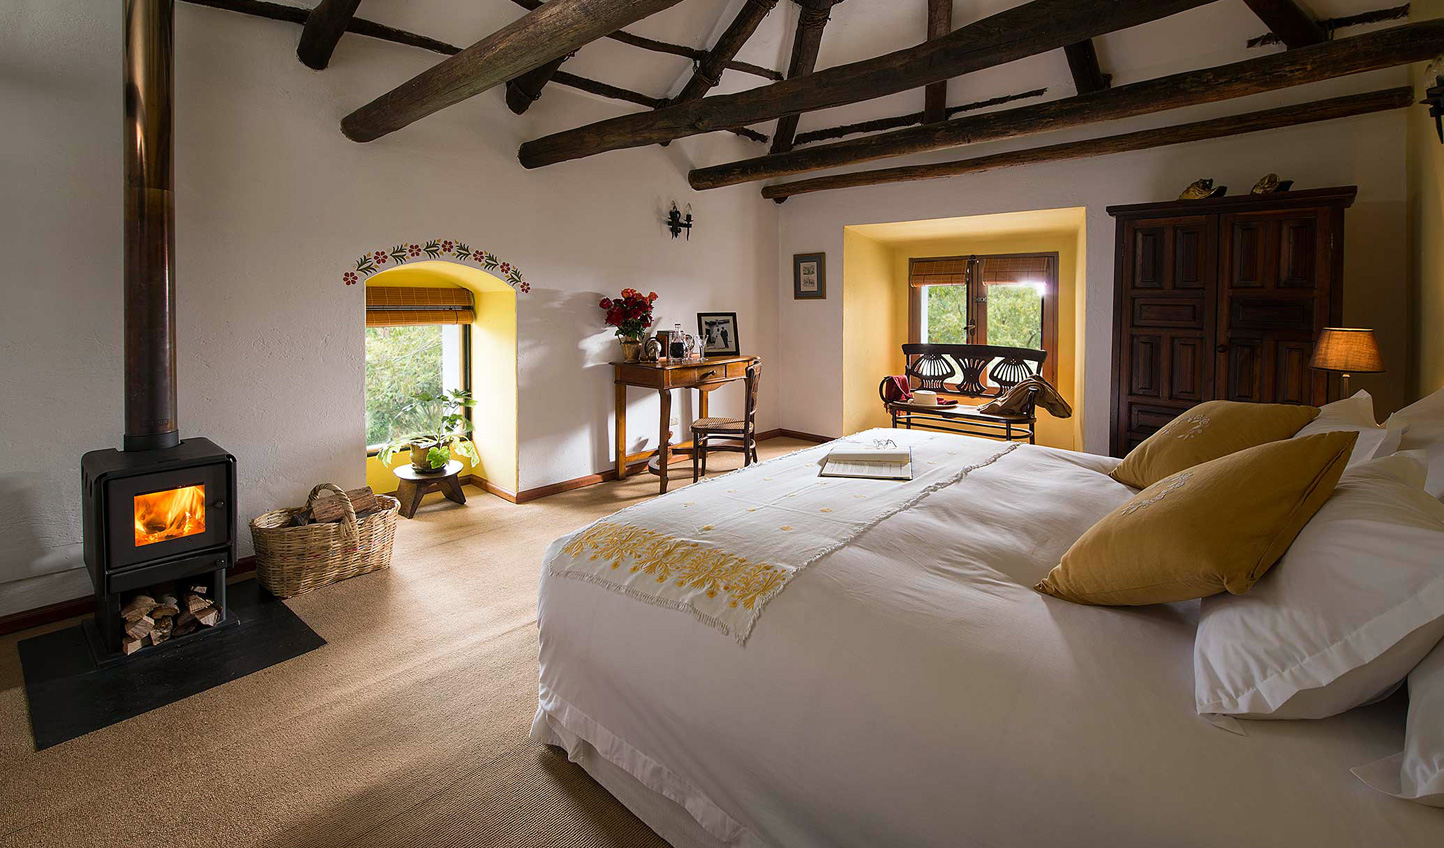 Suite dreams at the Hacienda Zuleta